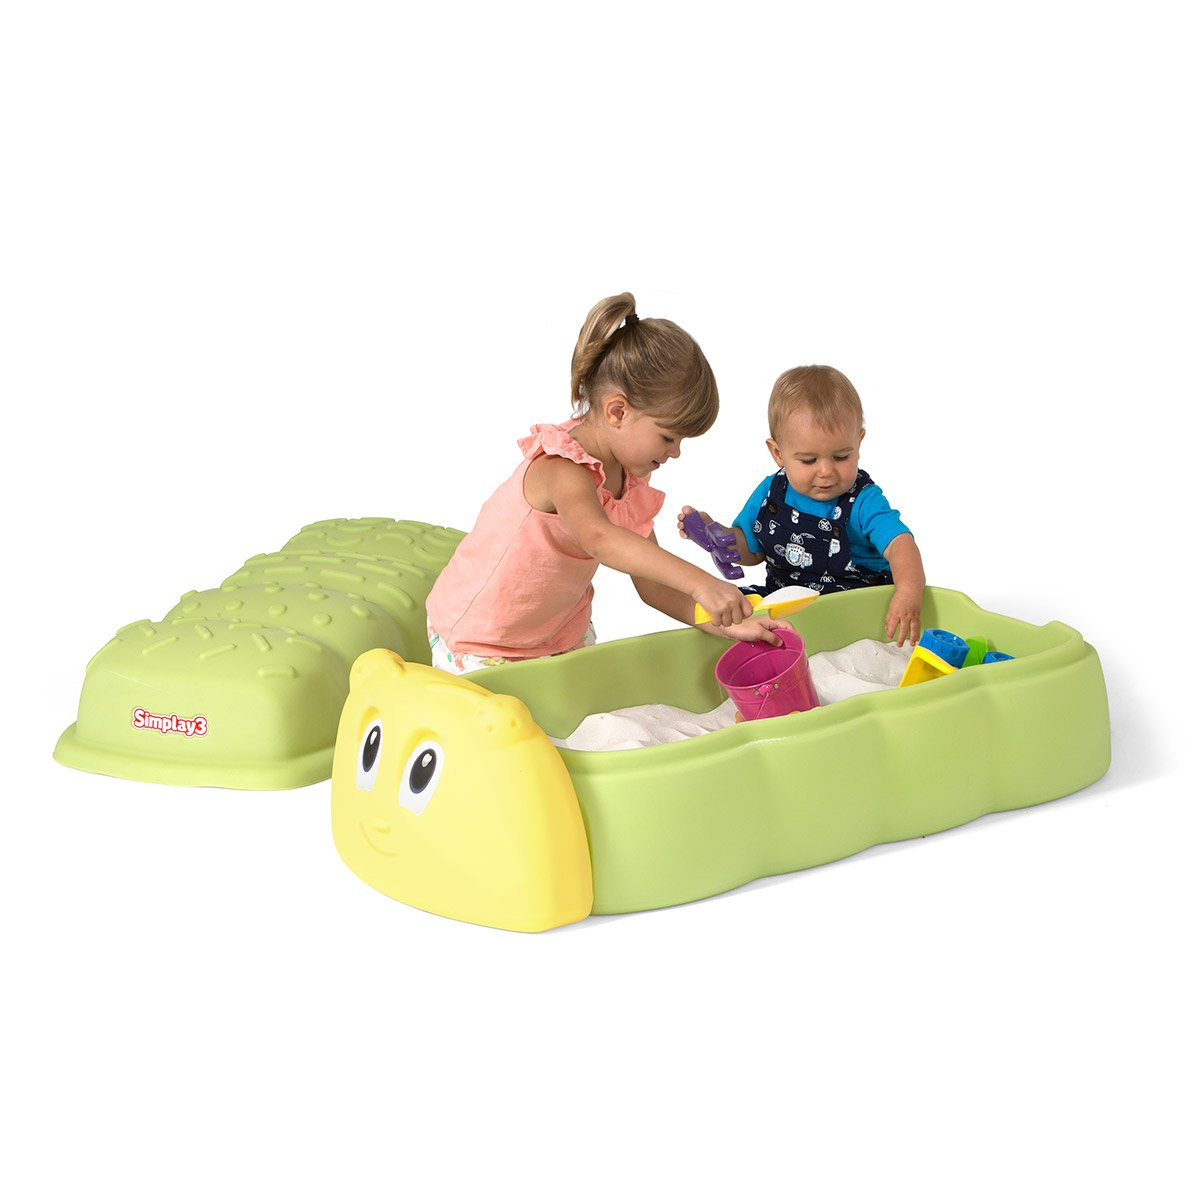 Simplay3 Caterpillar Toy Sand Box with Lid